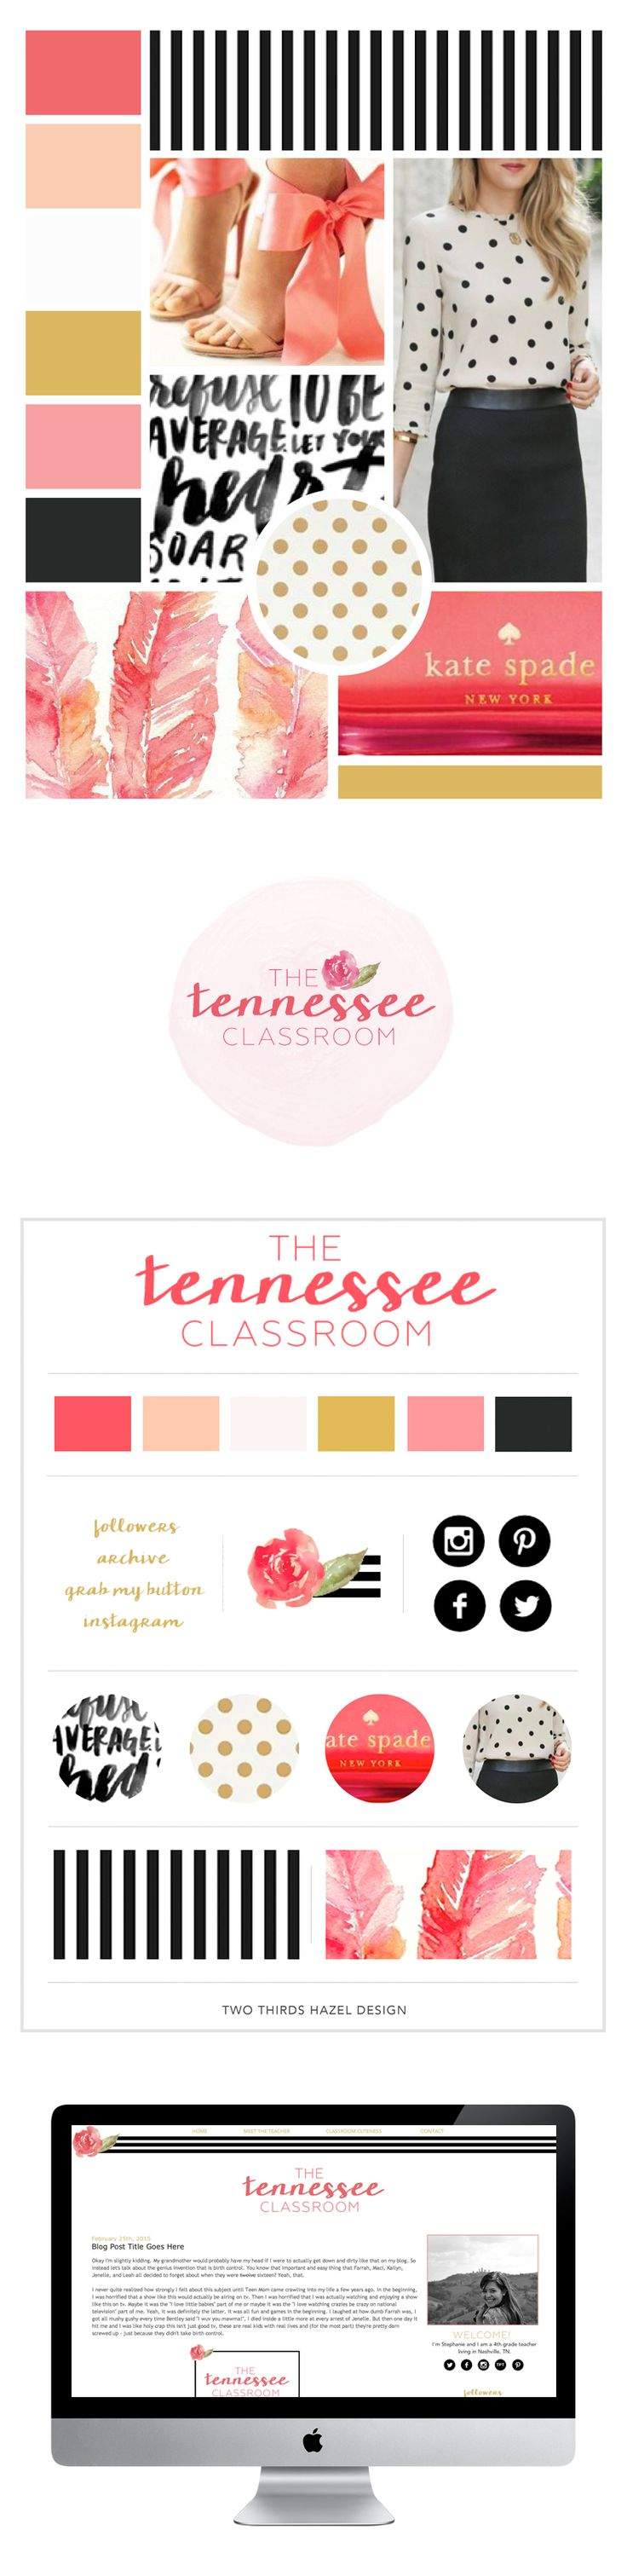 Blog design inspiration. Girly blog designs. Coral and gold. Website design. Brand board. Two Thirds Hazel Design.